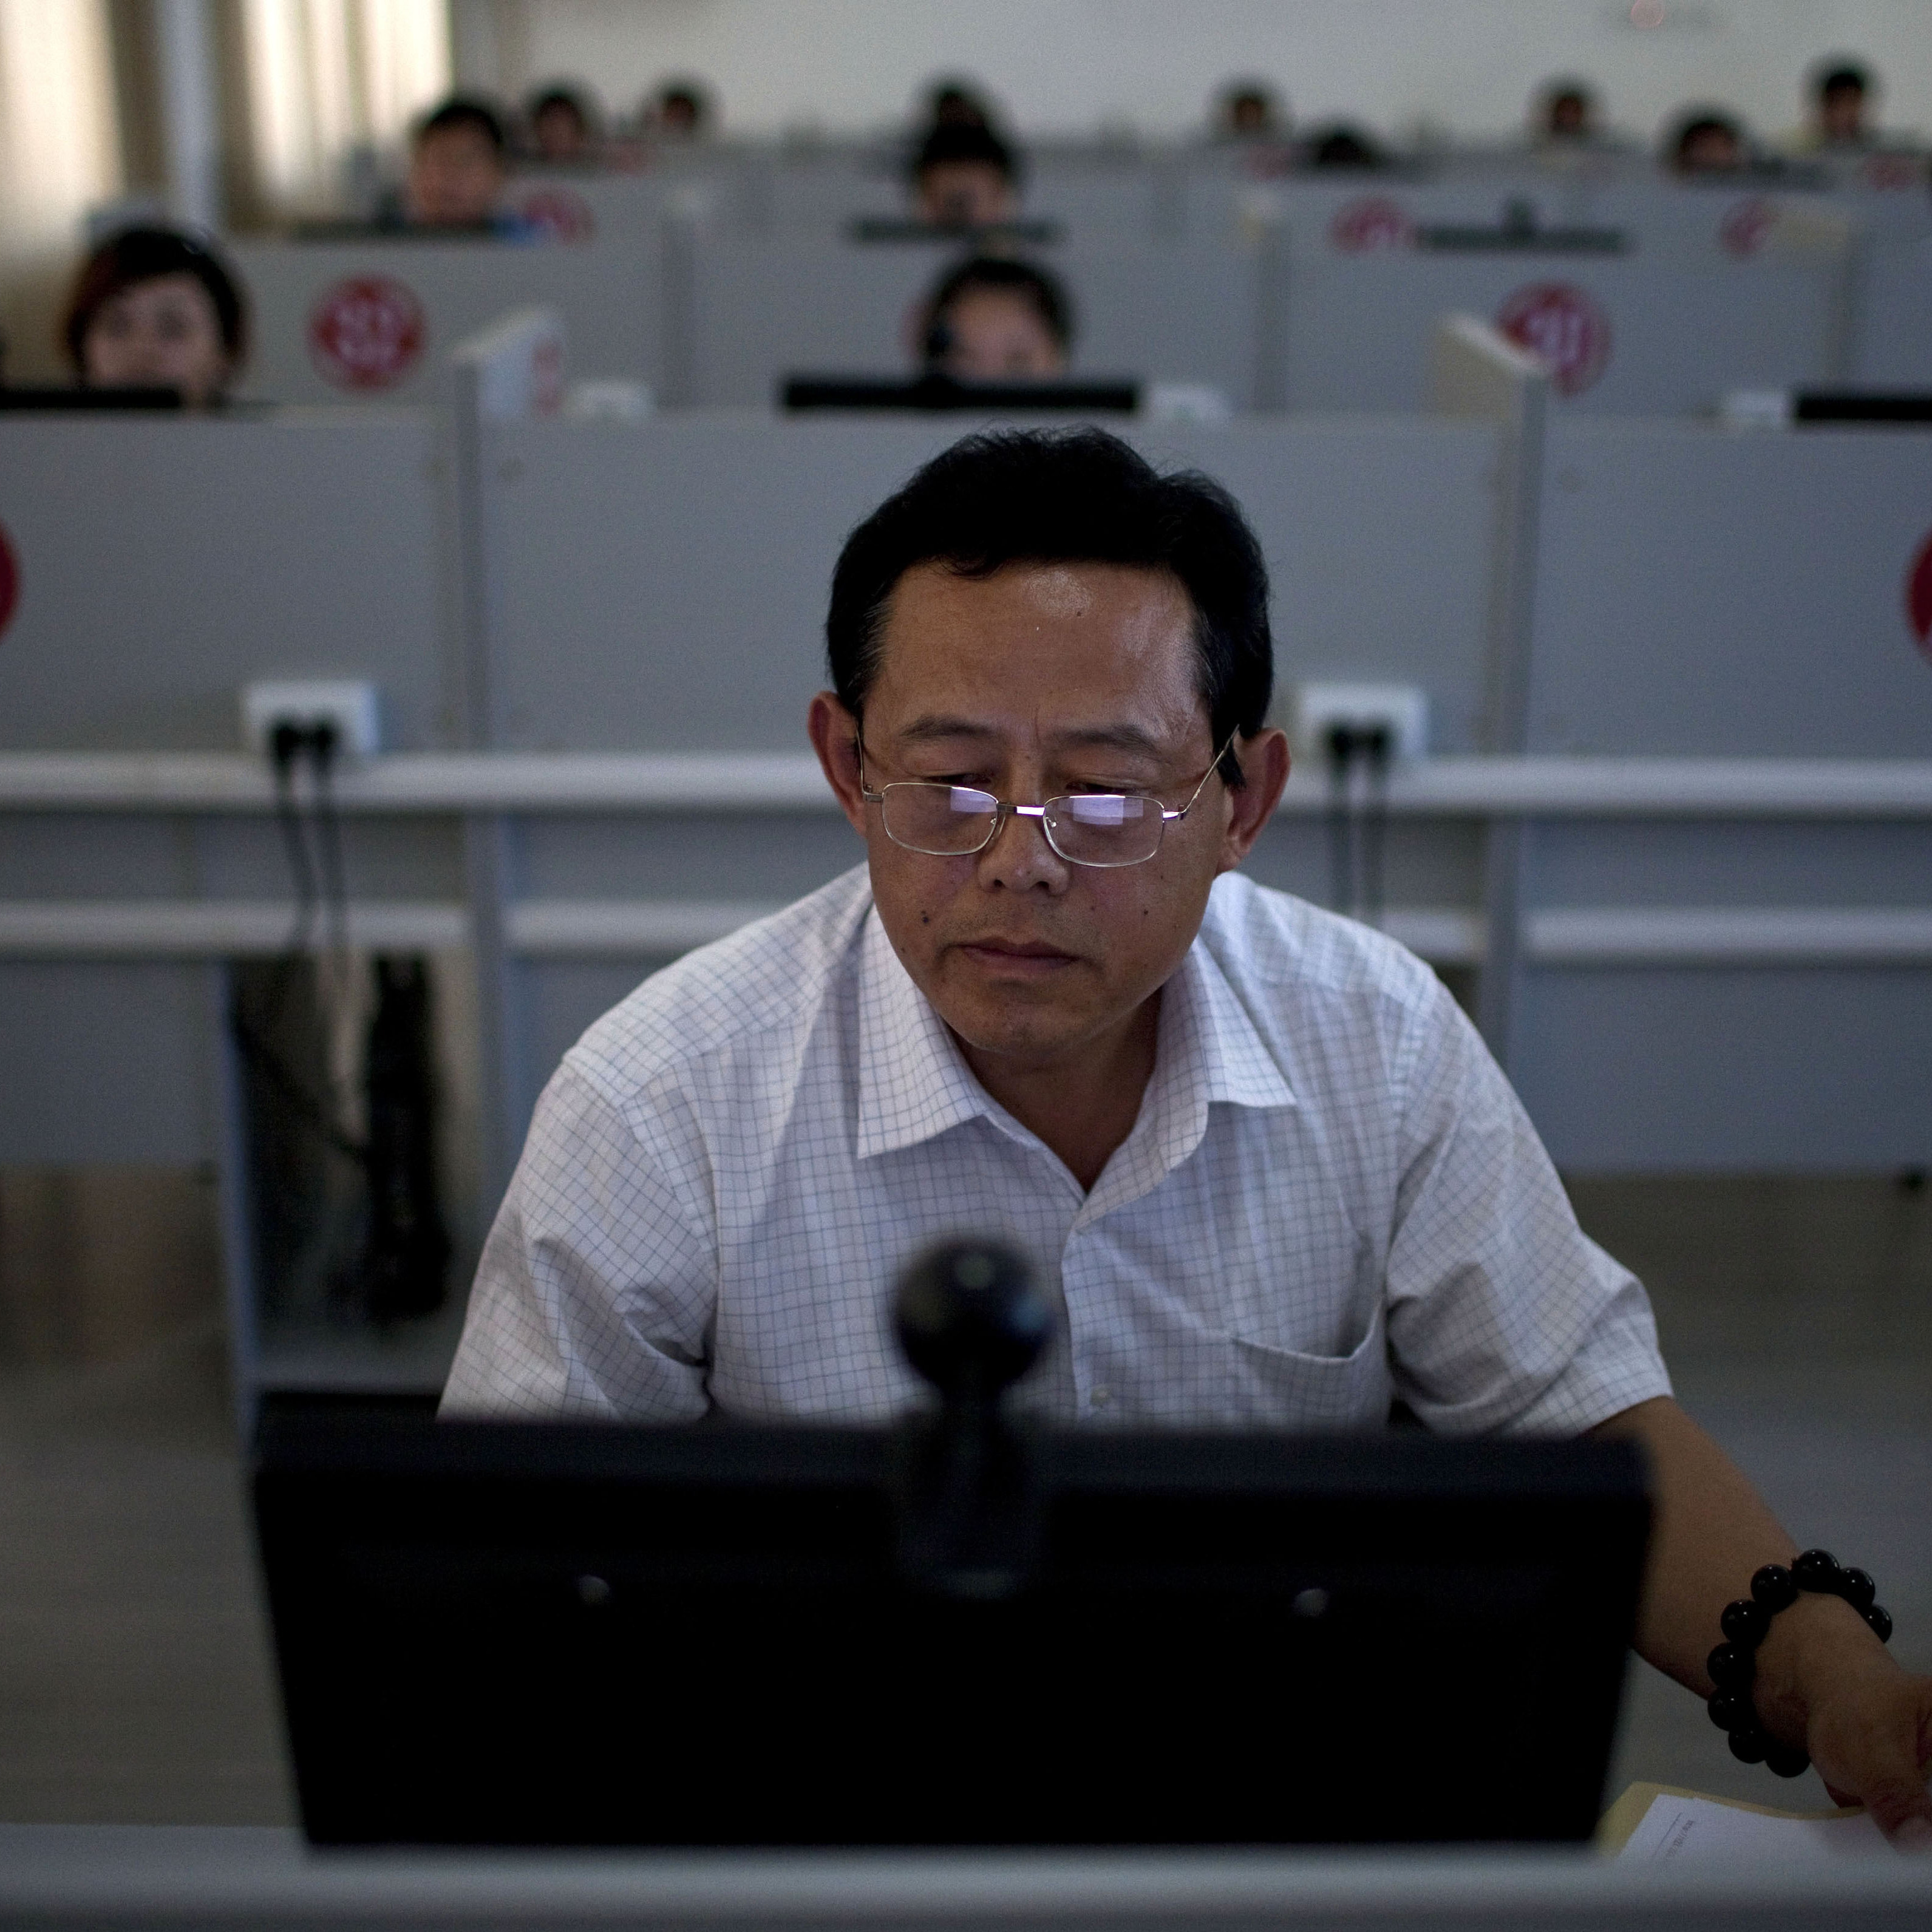 A man takes a computerized road rules test at a driving school in Jinan, in eastern China's Shandong province, in 2011. Most Chinese people -- accustomed to an education system that emphasizes rote memorization -- don't find the test as difficult as foreigners.